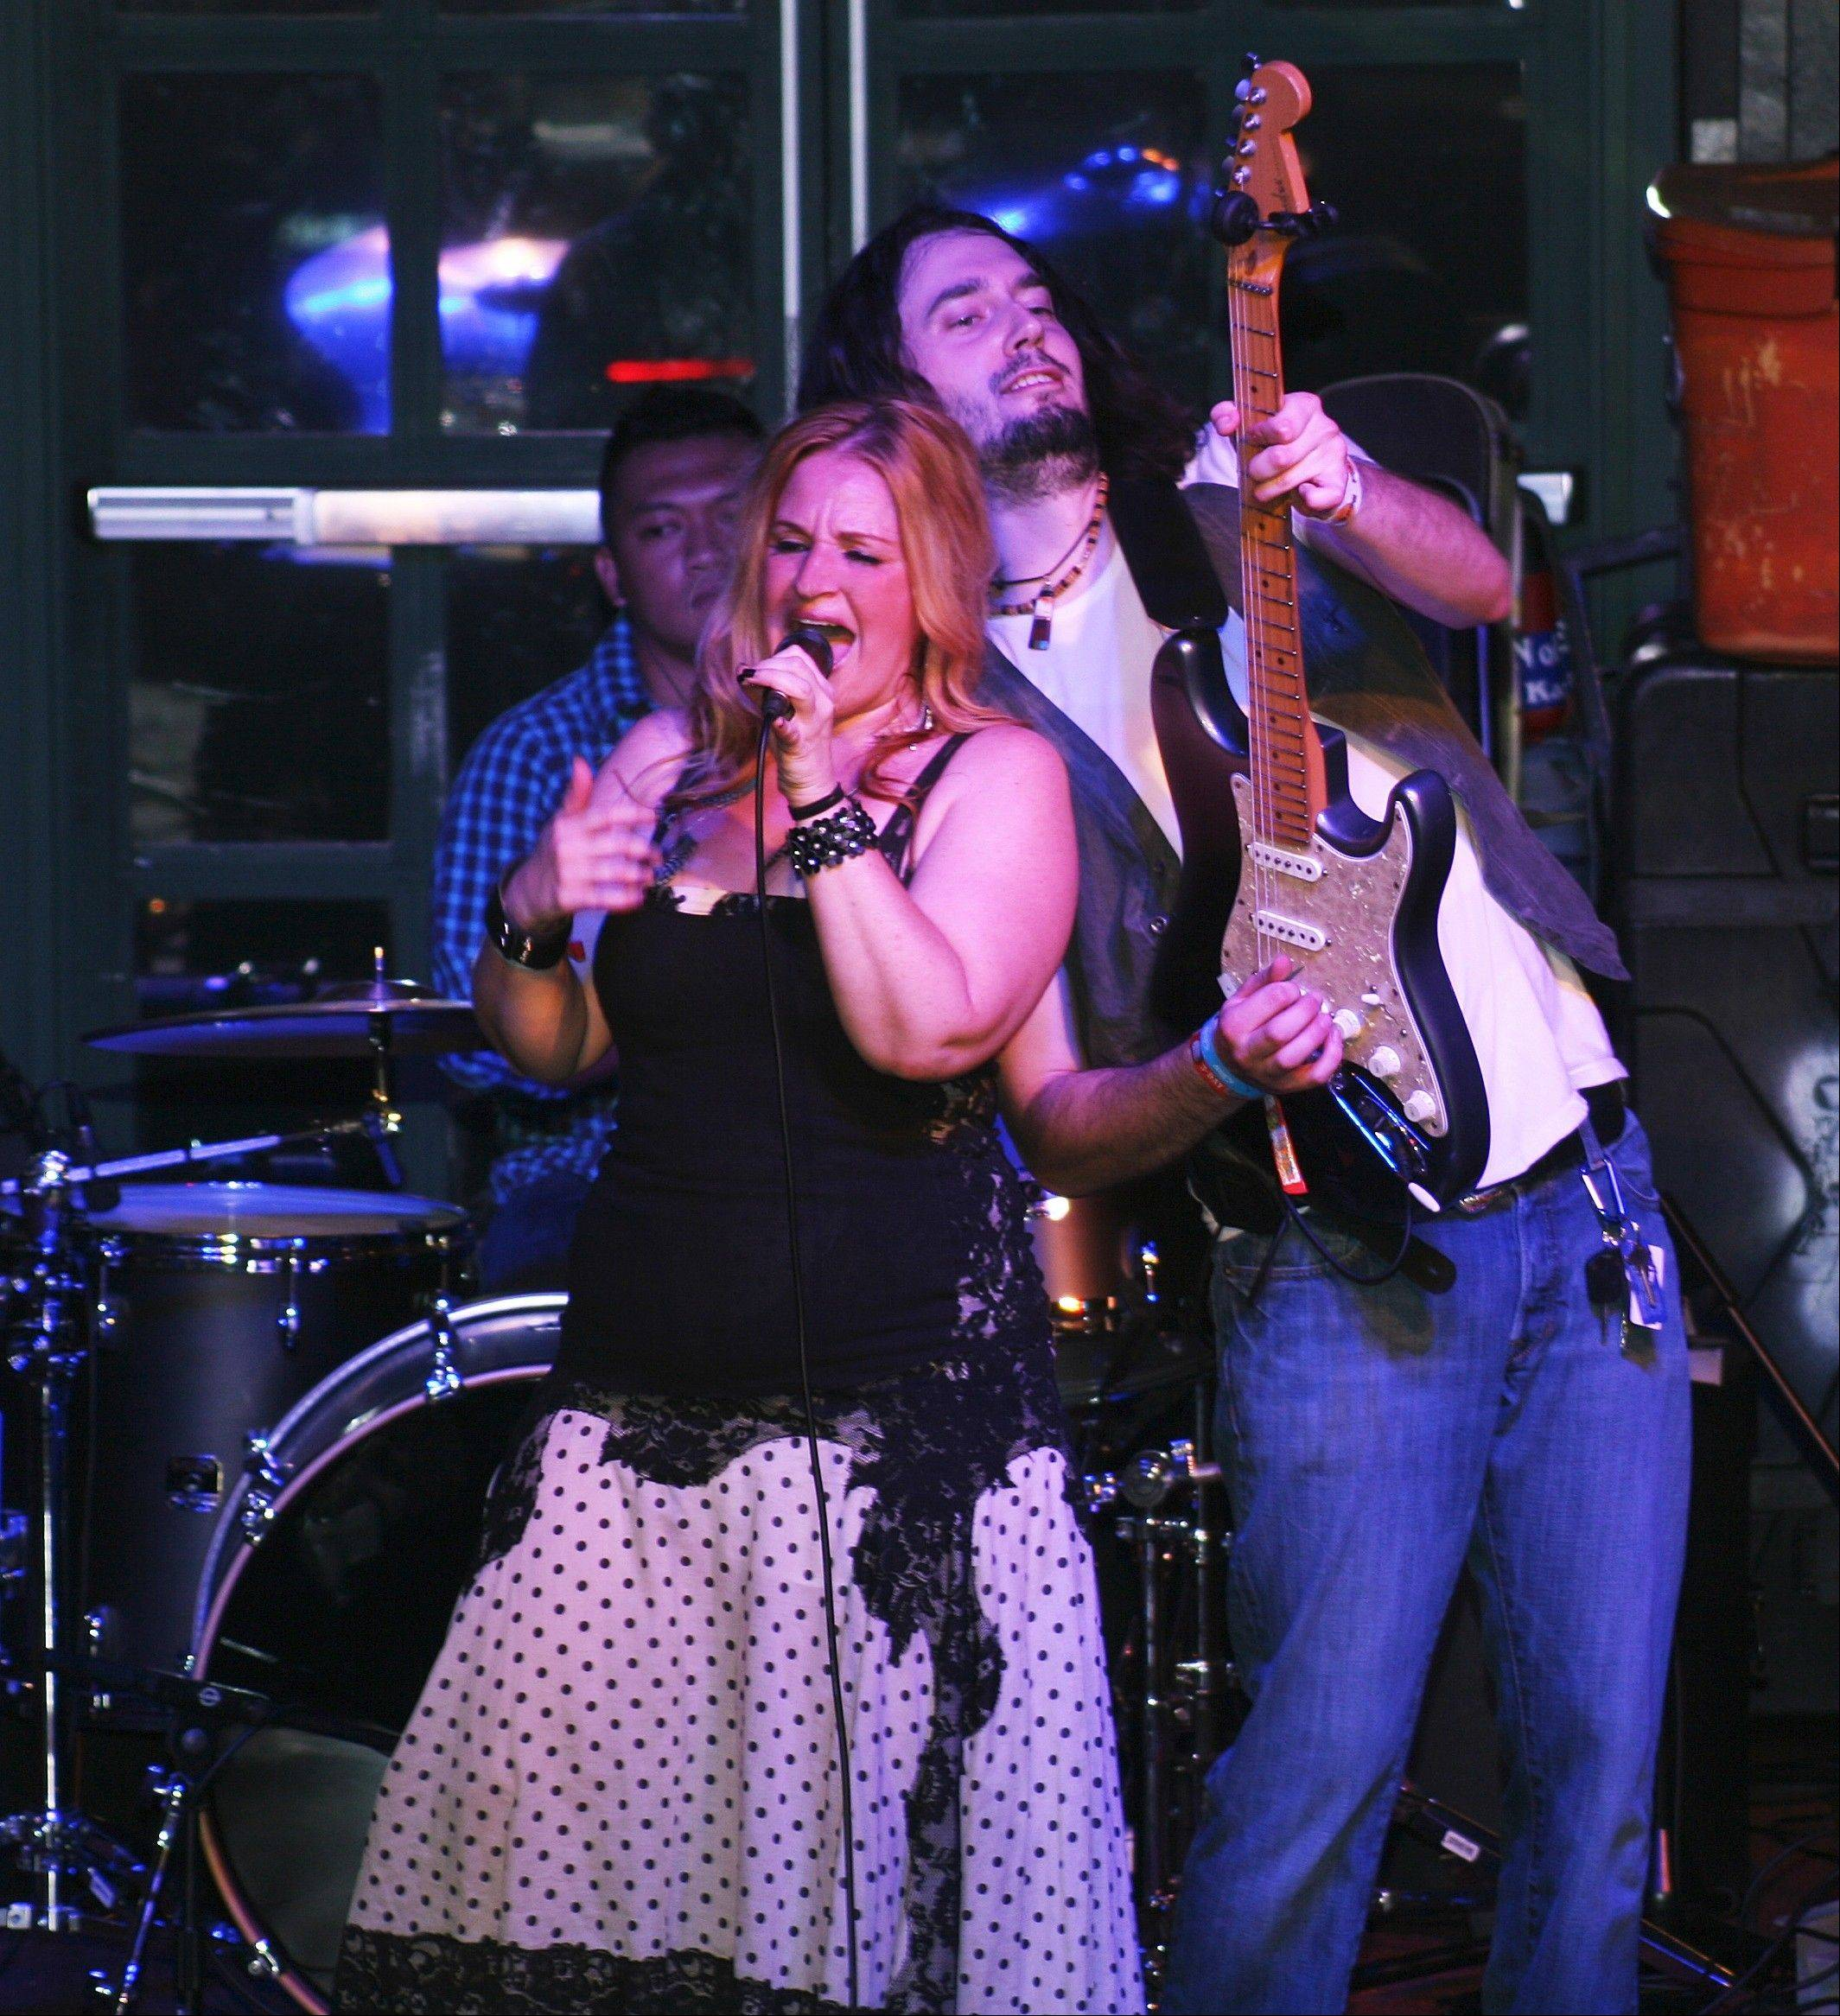 Northbrook's Lauren Wolf, left, and her bandmates plan to record a second album come spring. They won a national contest that landed them a gig at the House of Blues on Thursday, Dec. 27.